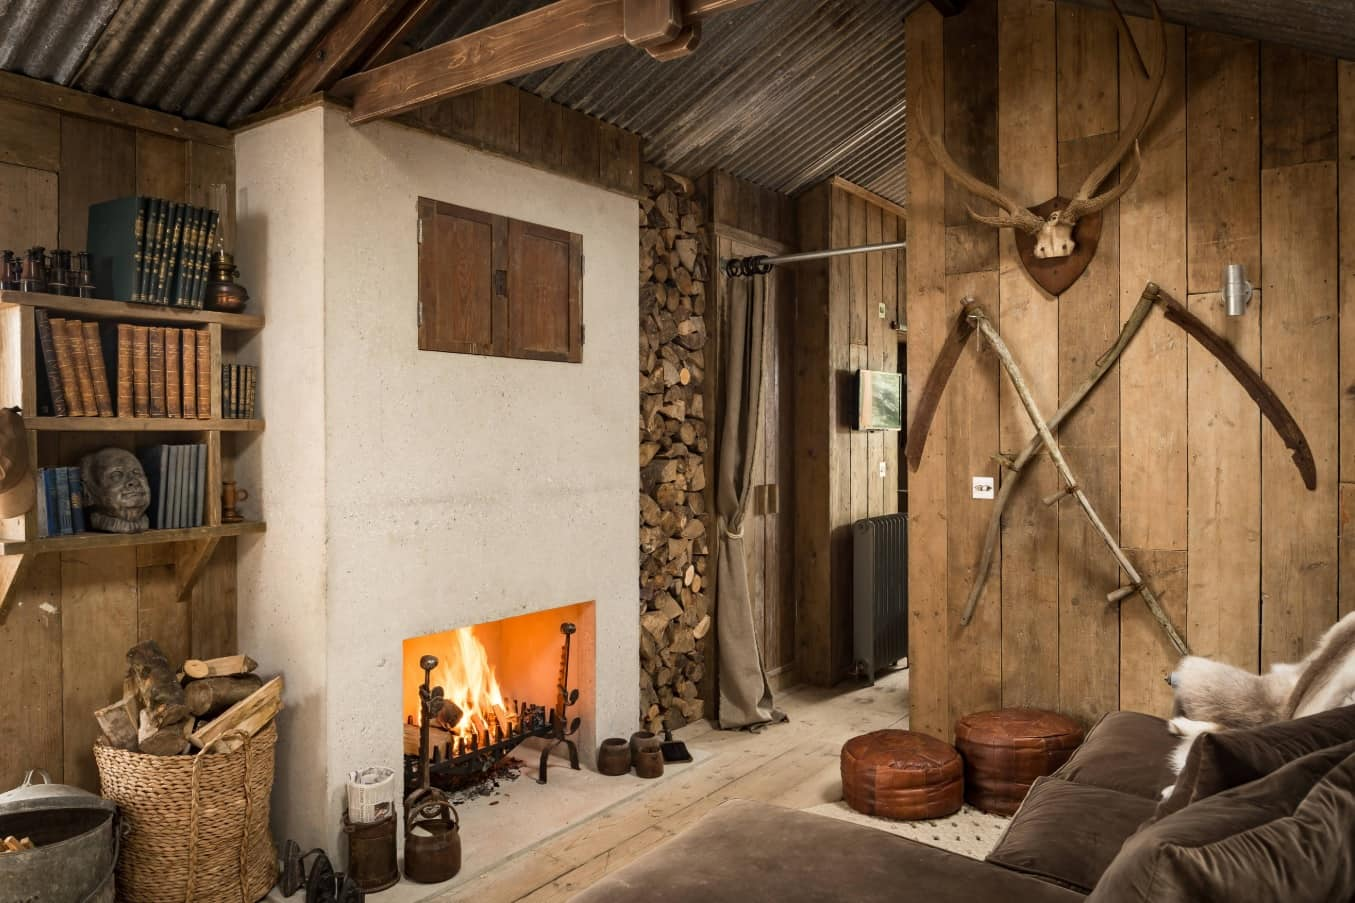 How to Turn Your Home Into a Dream Log Cabin. Fireplace and the firewood stock storage rack in the forester's house